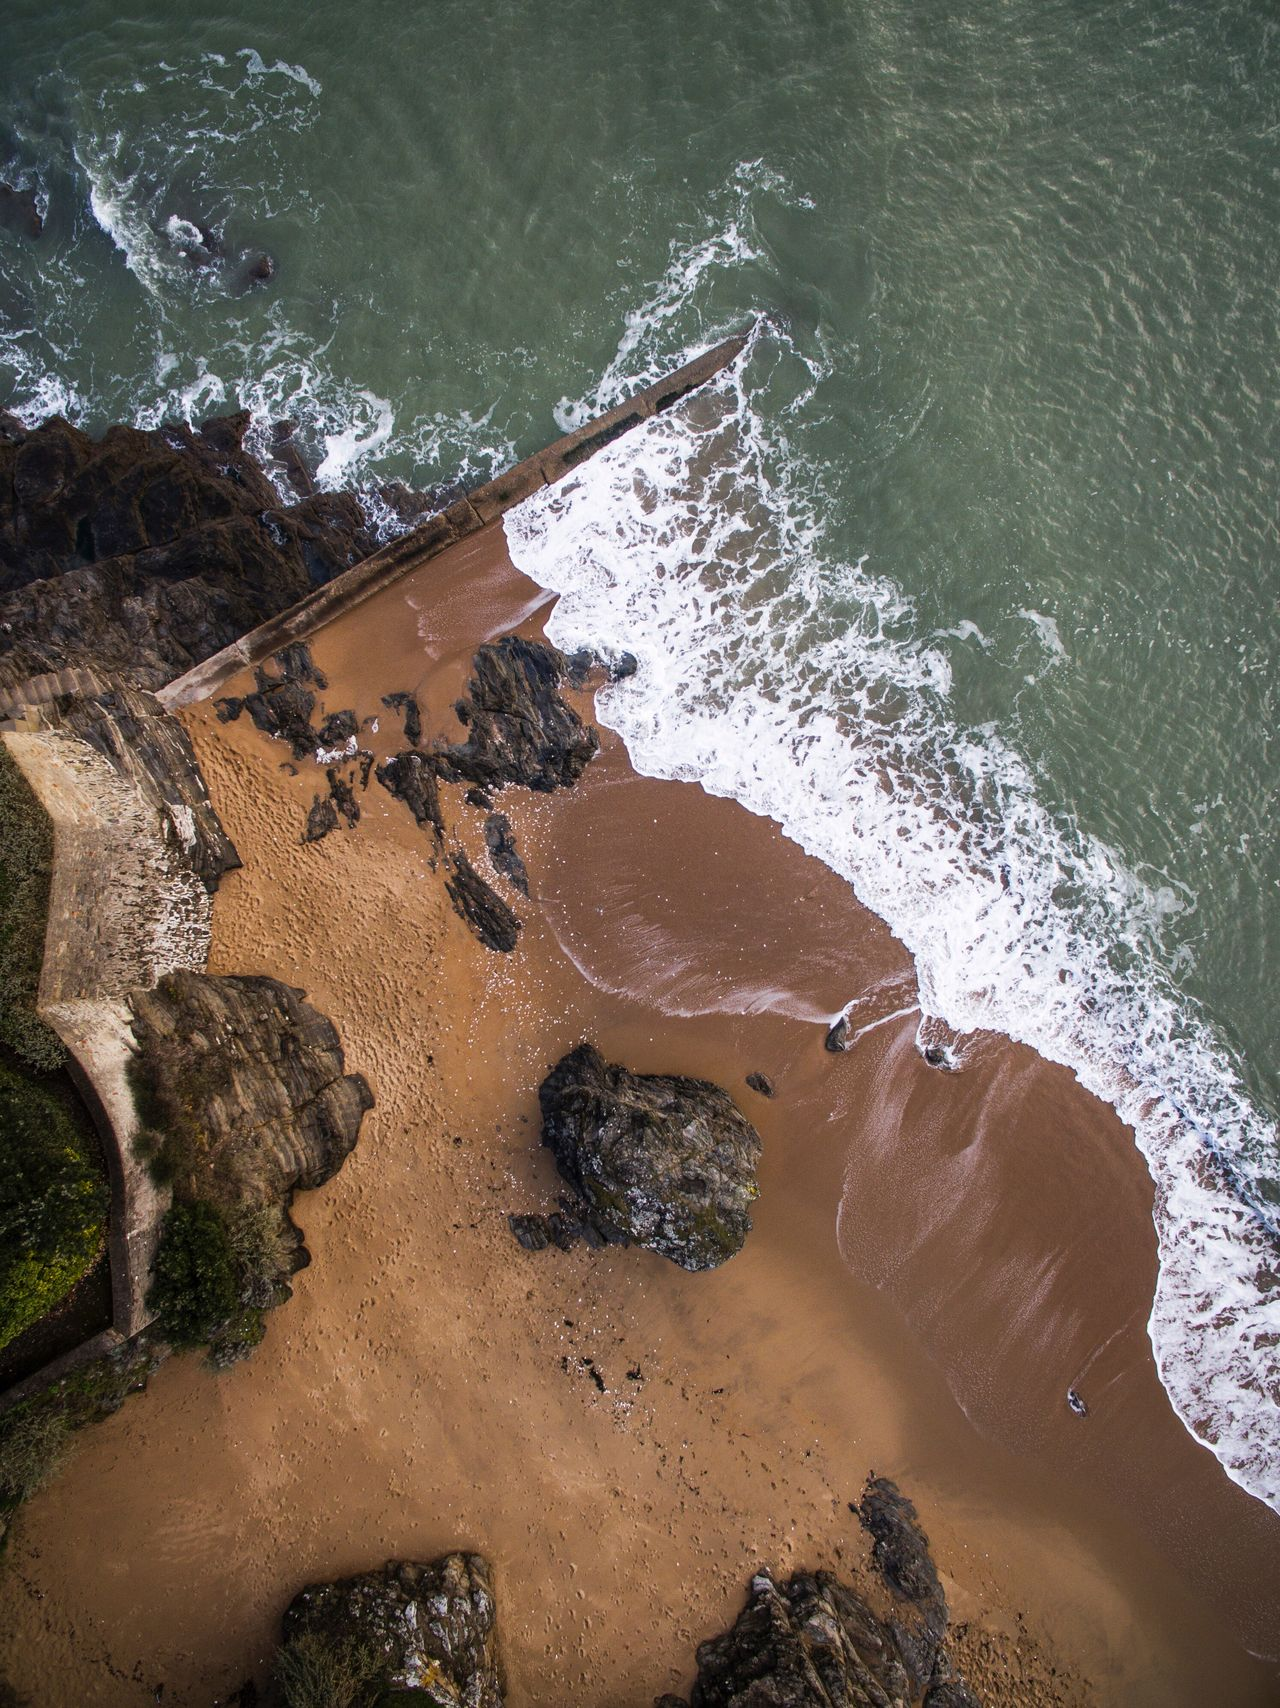 Flying High Water Sea High Angle View Wave Outdoors Beach Rock - Object Day Vacations Nature One Person Adventure Beauty In Nature Nature_collection Nature Photography View From Above Aerial View Ocean Ocean View Landscape_Collection Landscape_photography Landscape No People Flying High